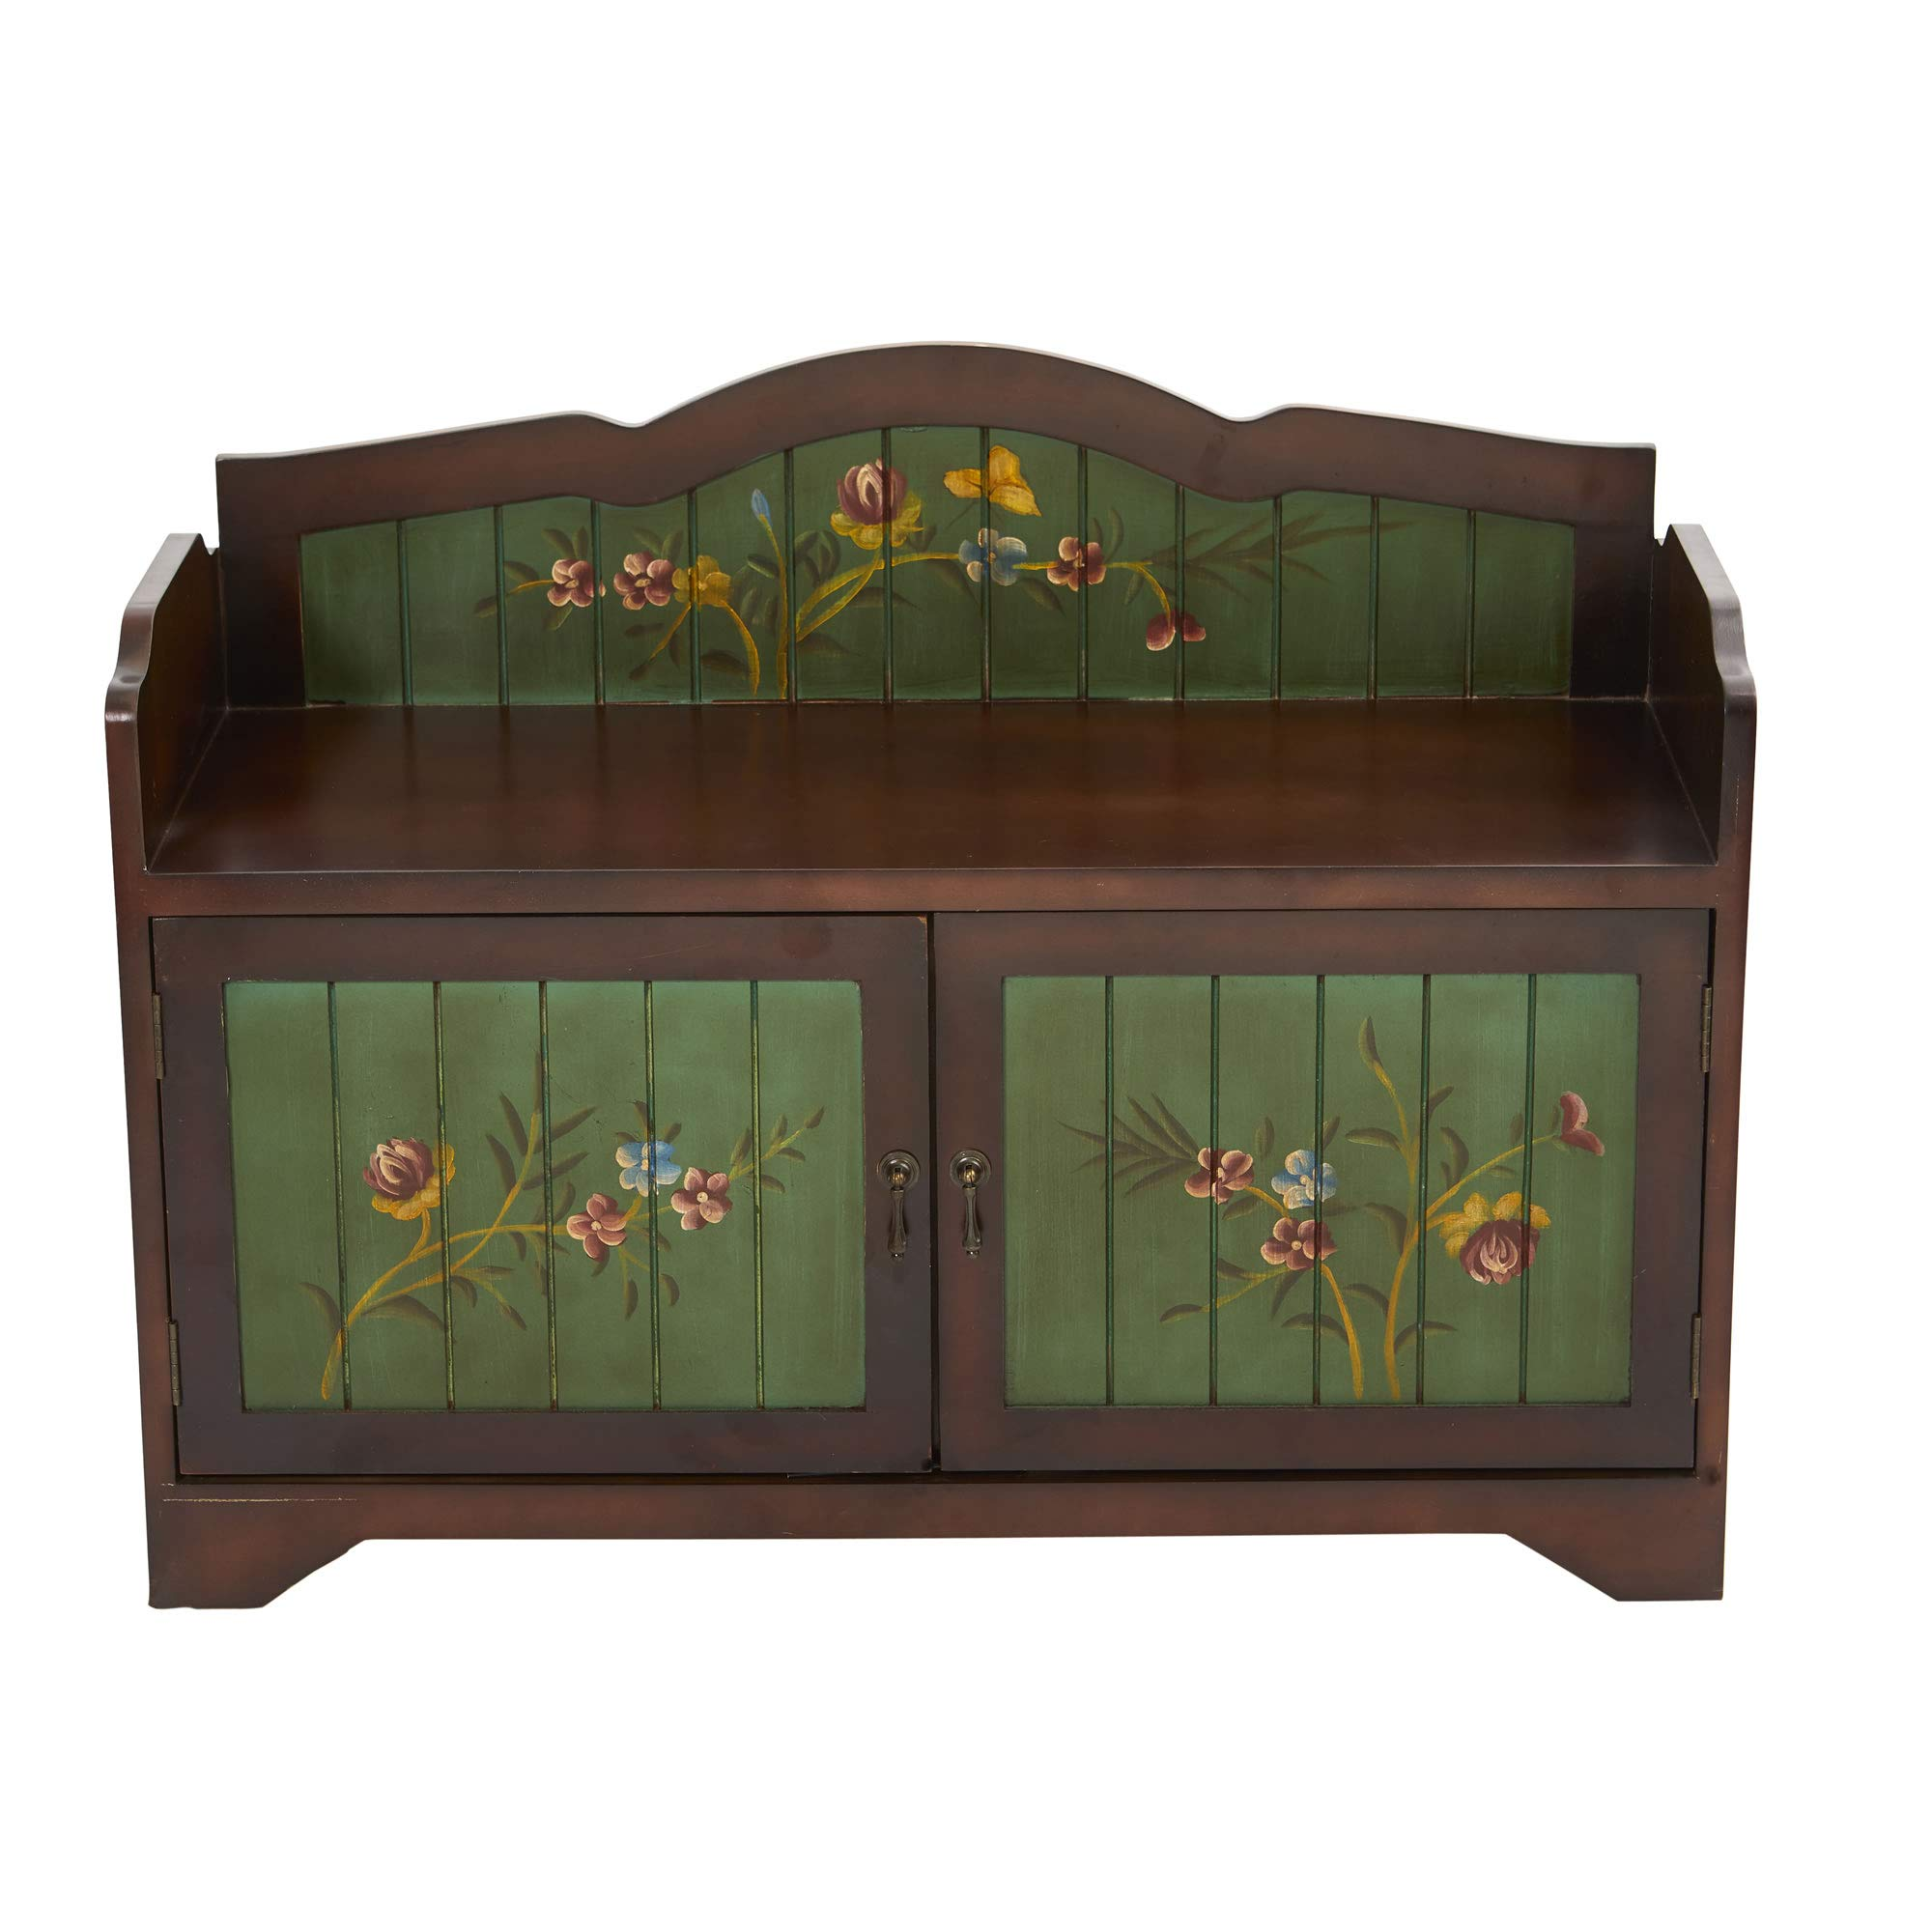 GREATHOPES 36'' Antique Floral Art Bench with Drawers Decoration Silk Flowers